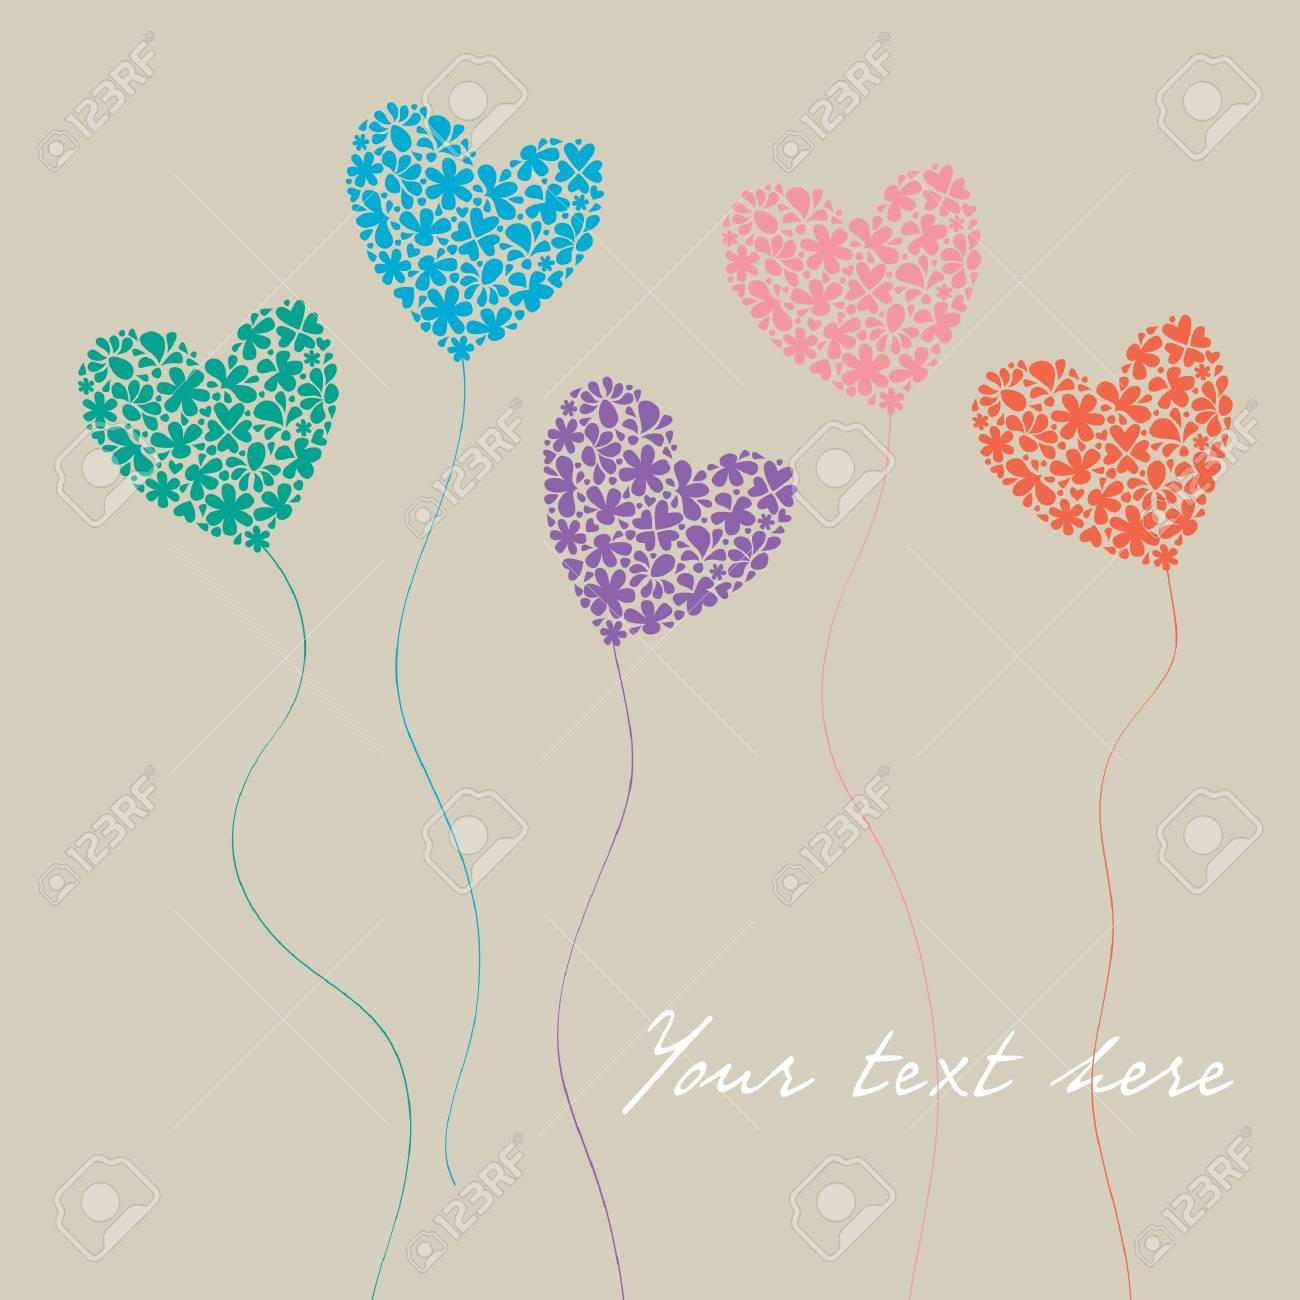 greeting card with colorful flowers hearts in the form of balloons Stock Vector - 19899404